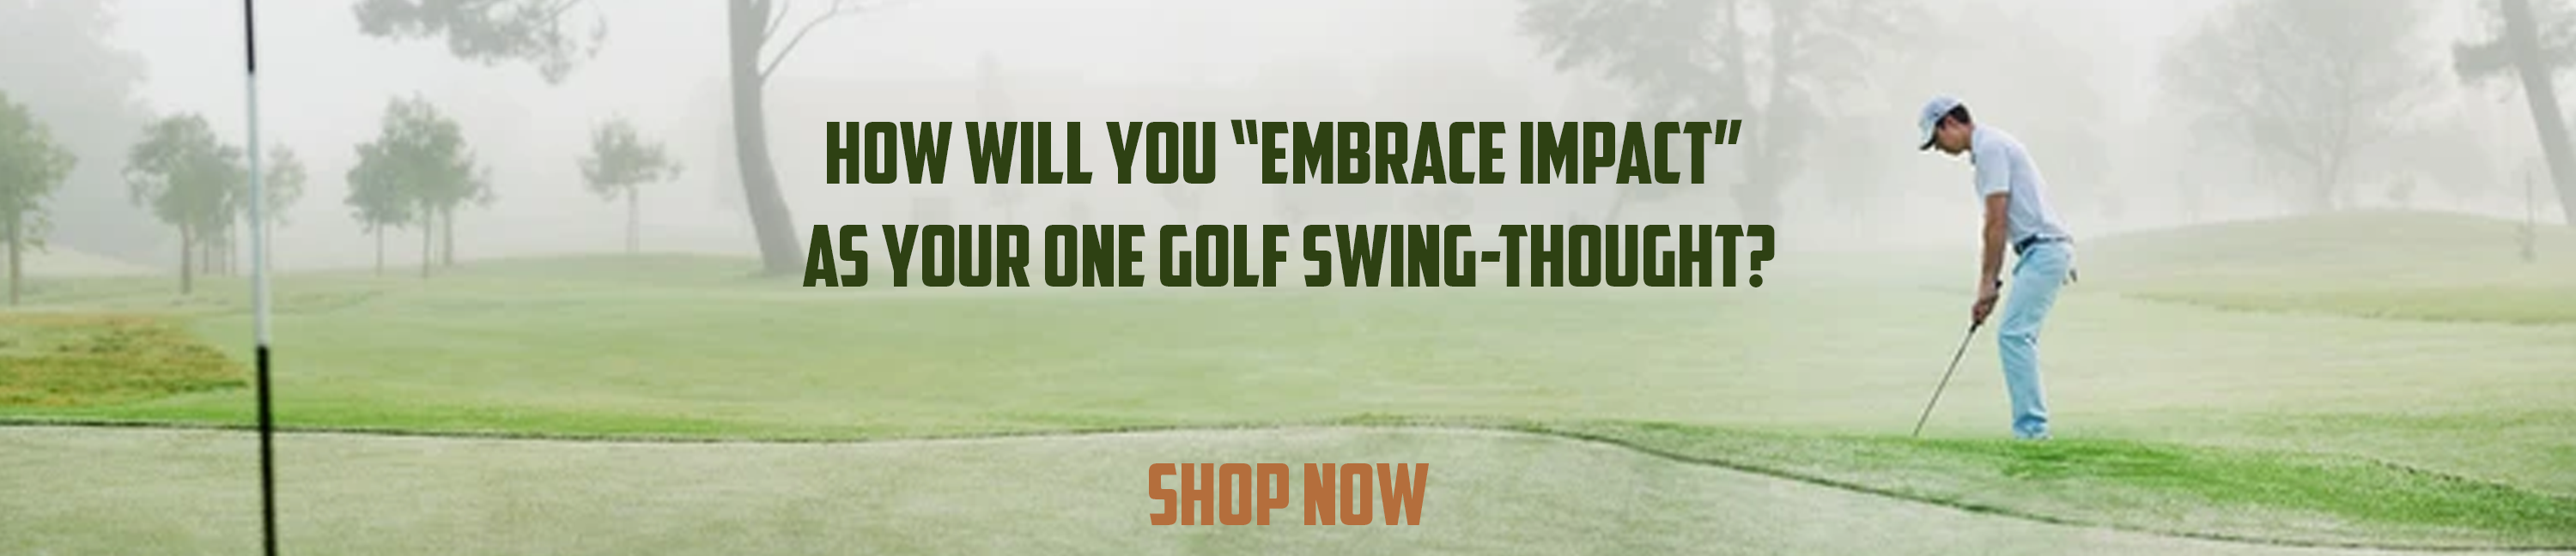 Impact Swing thought